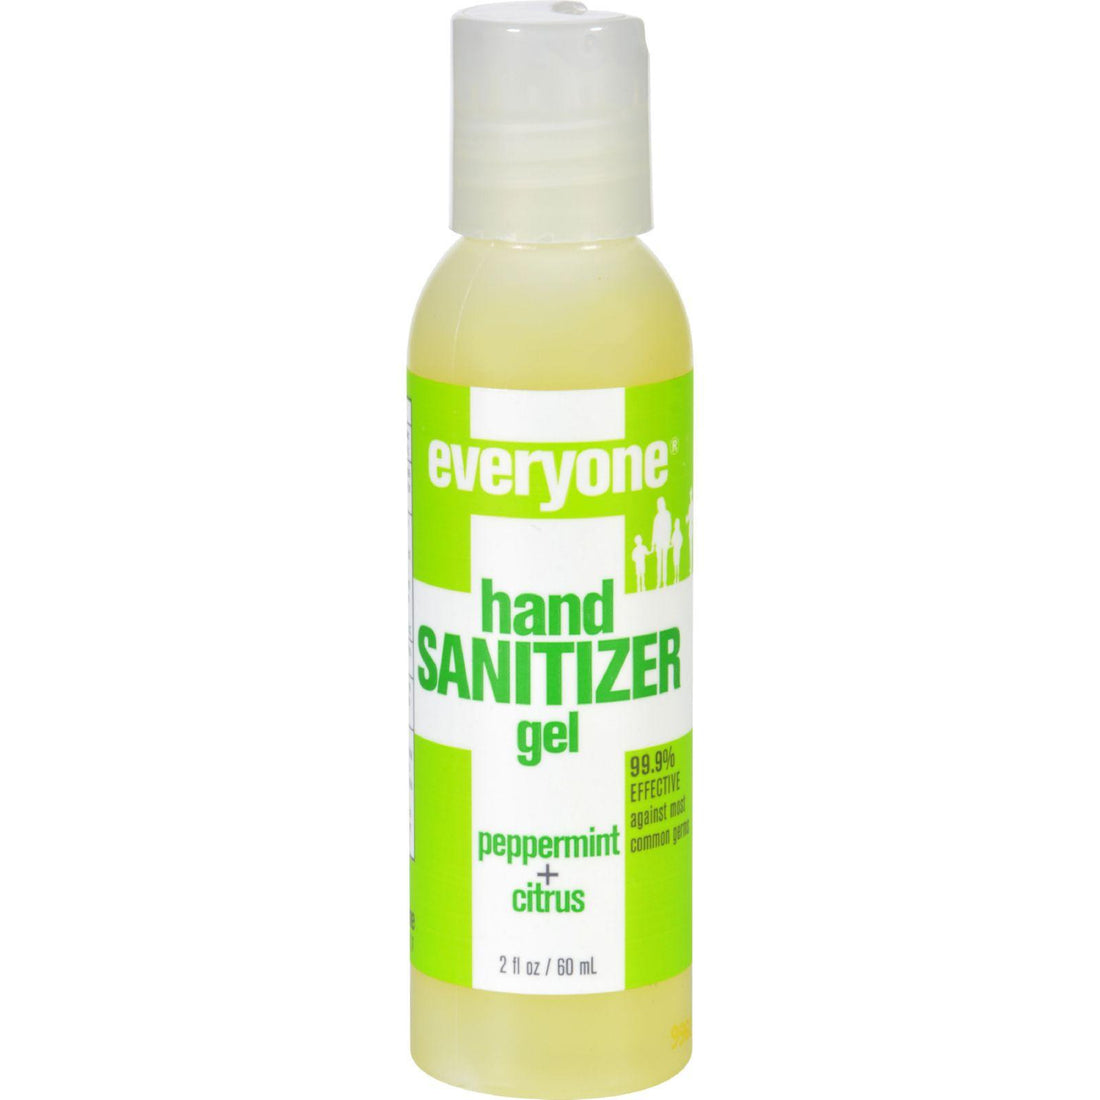 Mother Mantis: Eo Products Hand Sanitizer Gel - Everyone - Peppermnt - Dsp - 2 Oz - 1 Case Eo Products